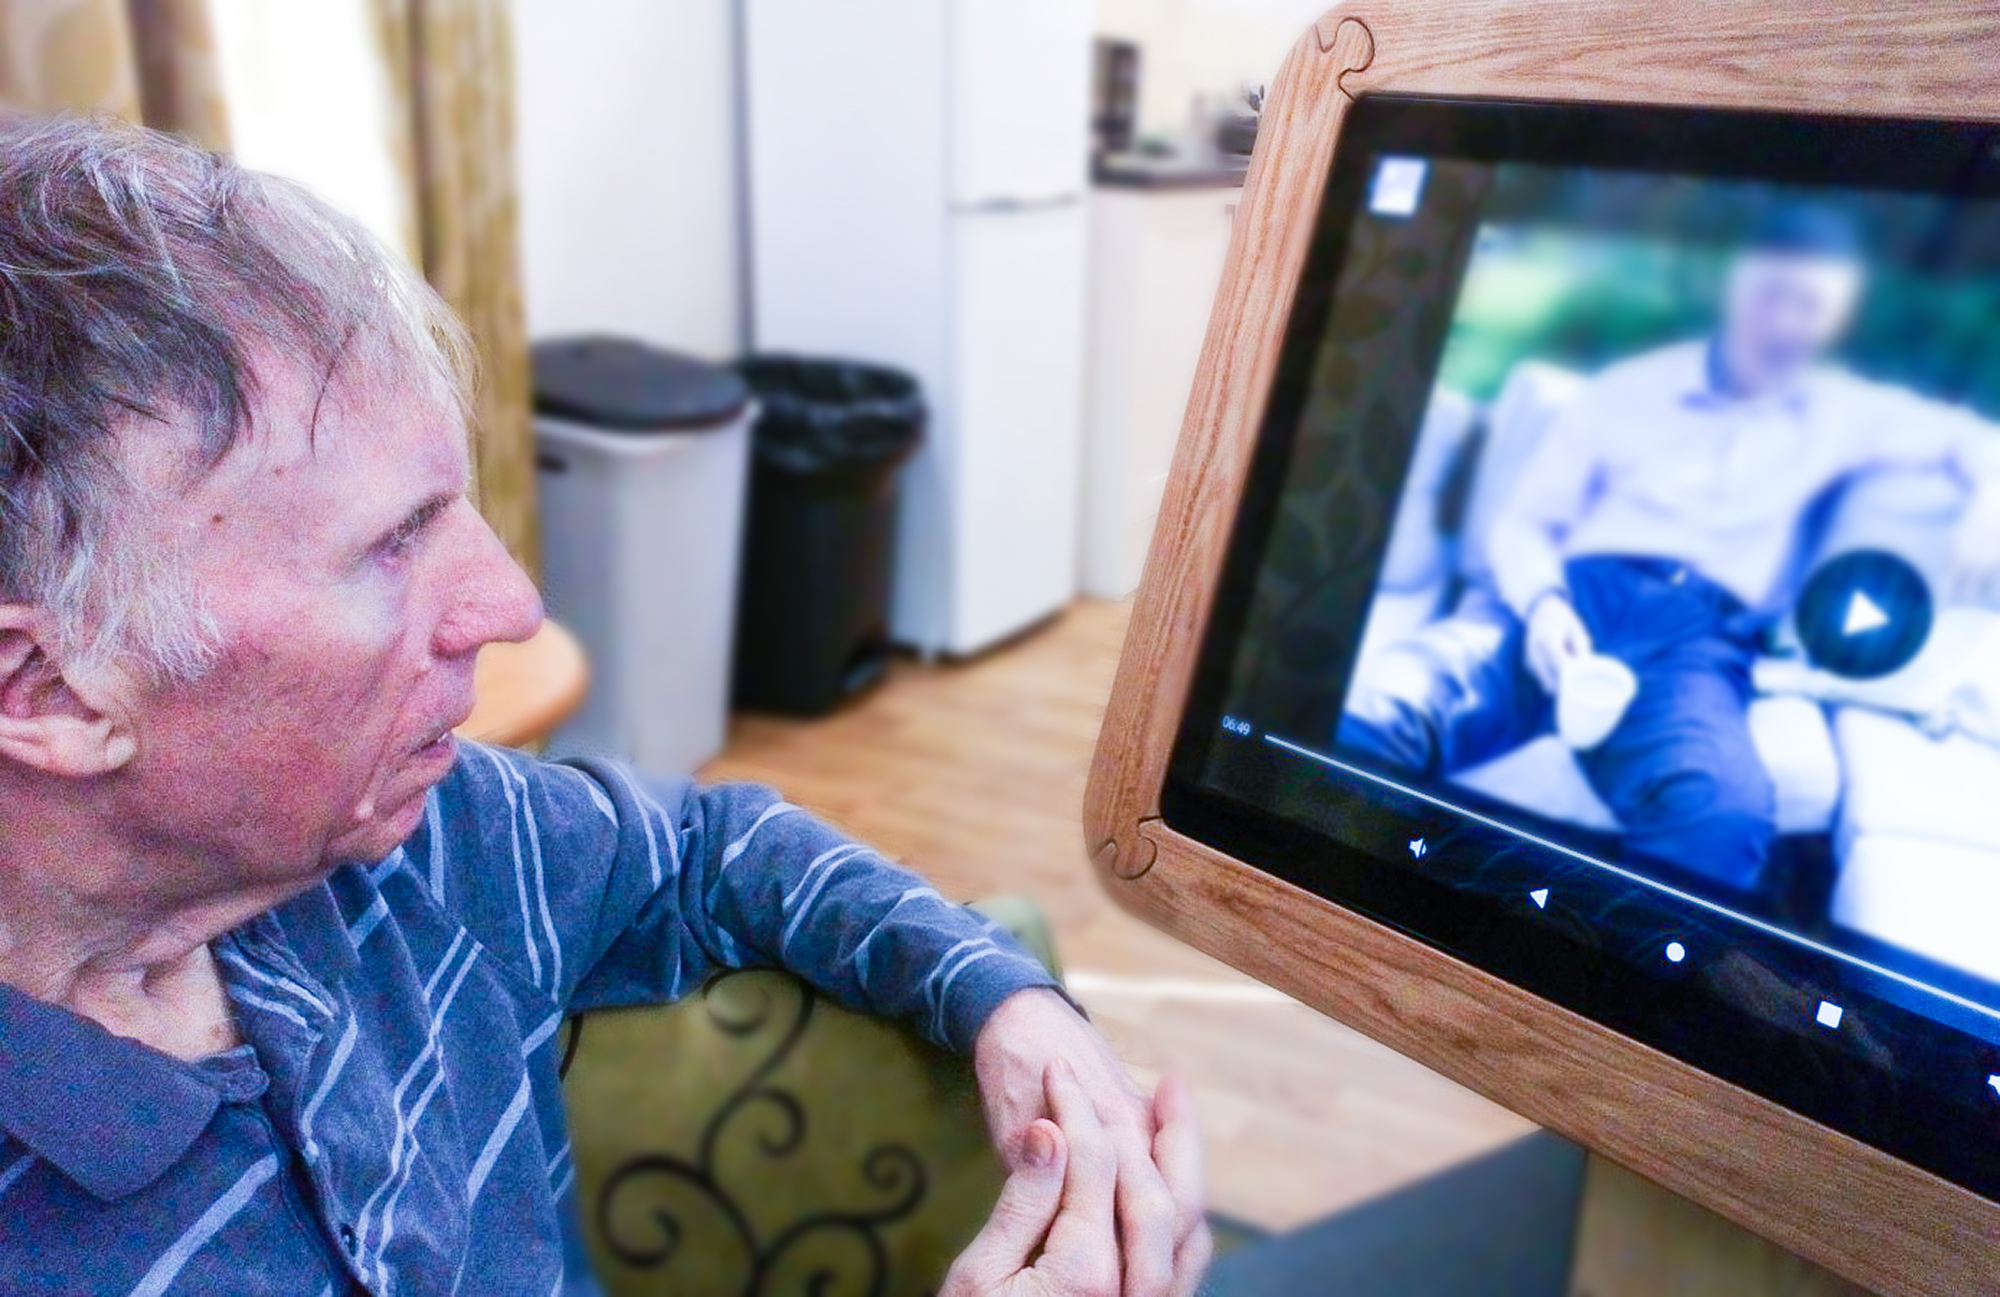 A resident using the interactive table technology.